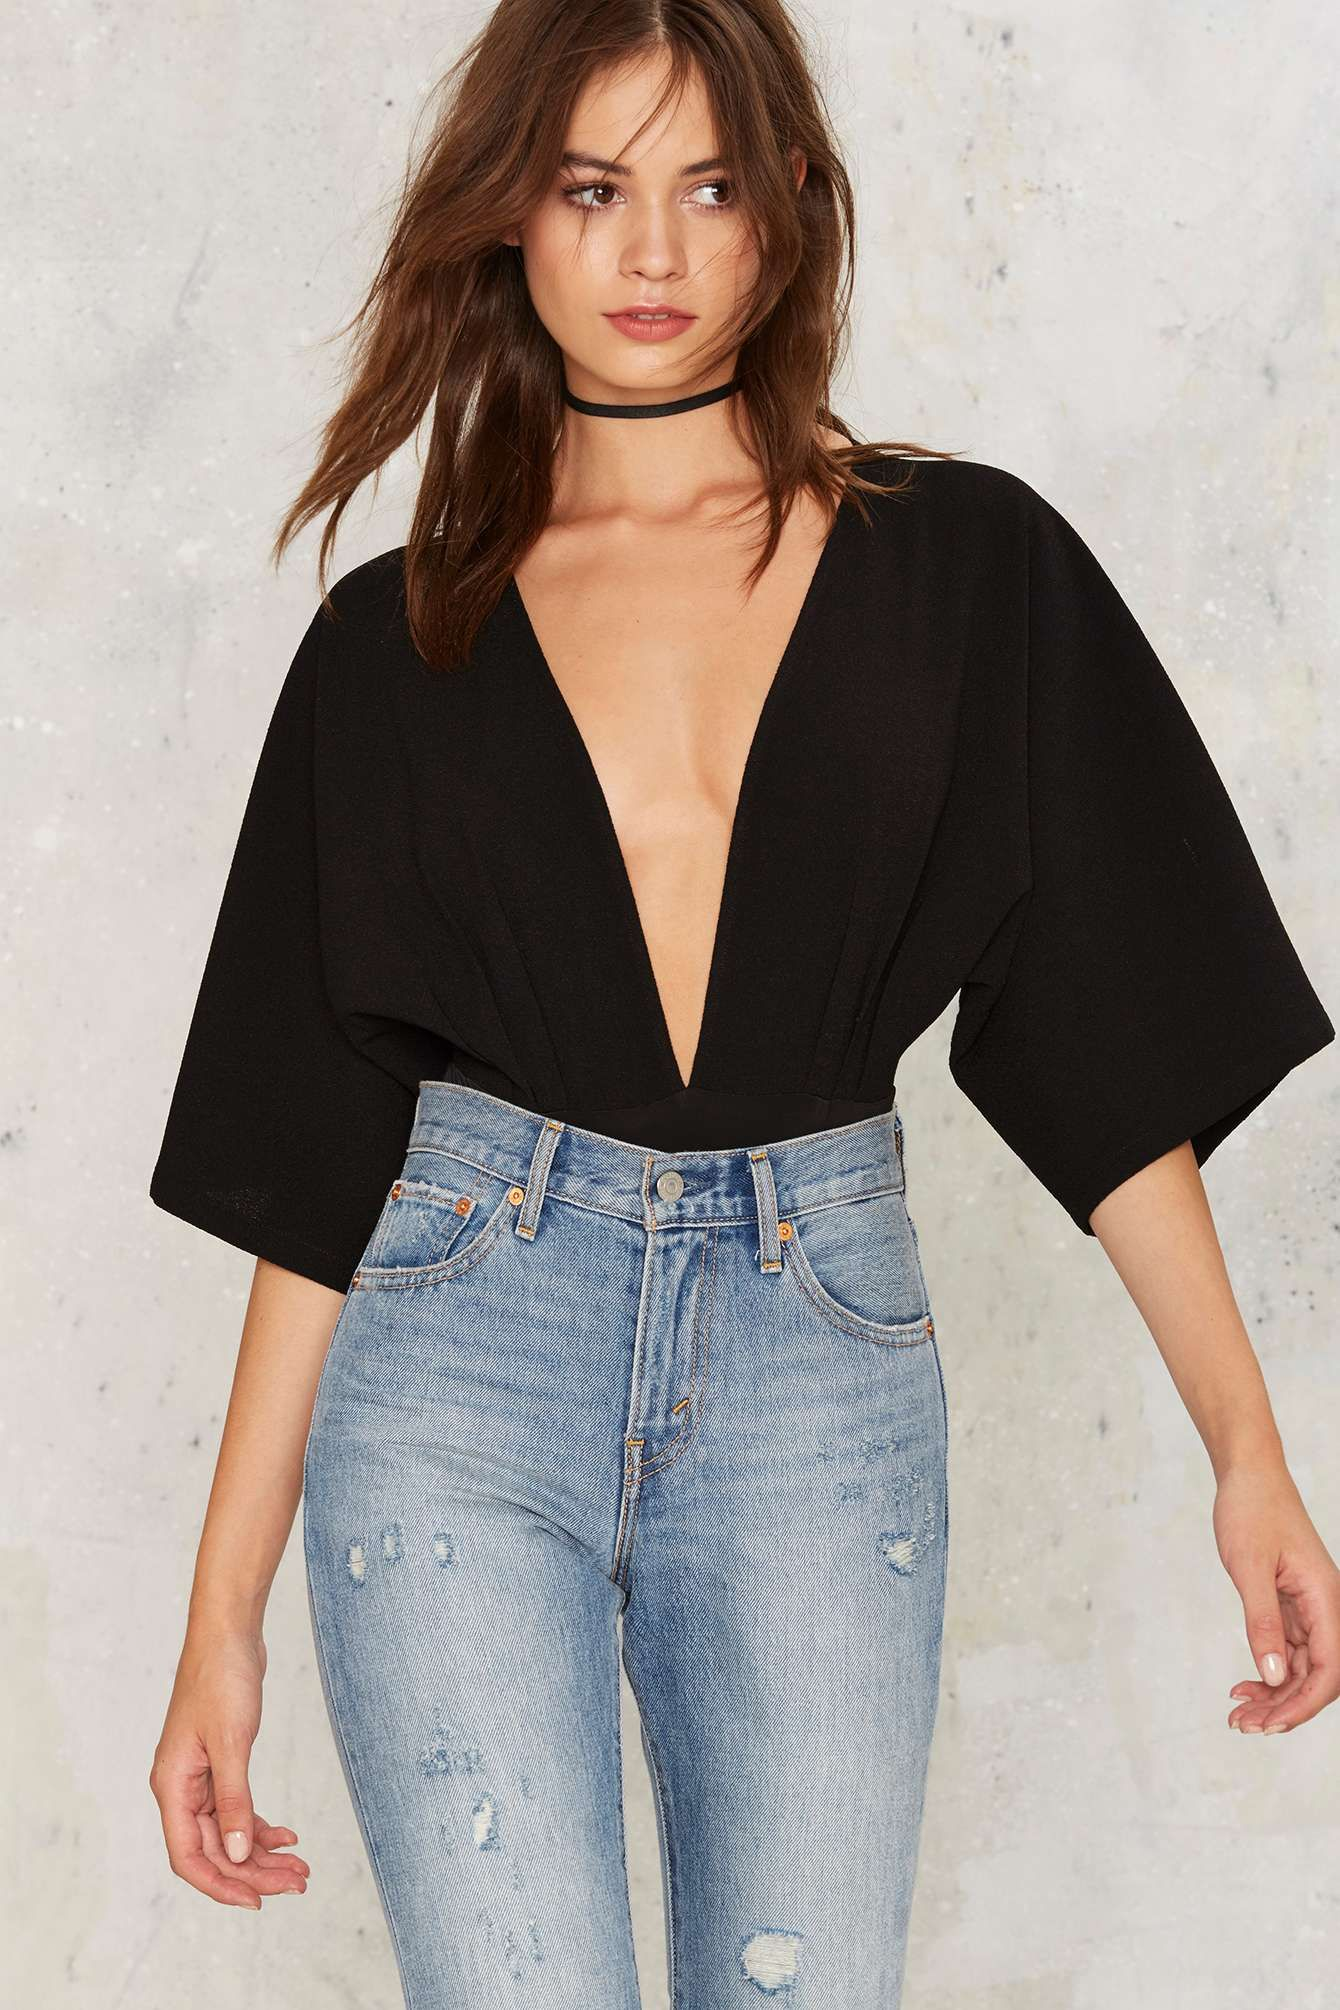 Lace bodysuit shirt  All Falls Down Plunging Bodysuit  Shop Clothes at Nasty Gal